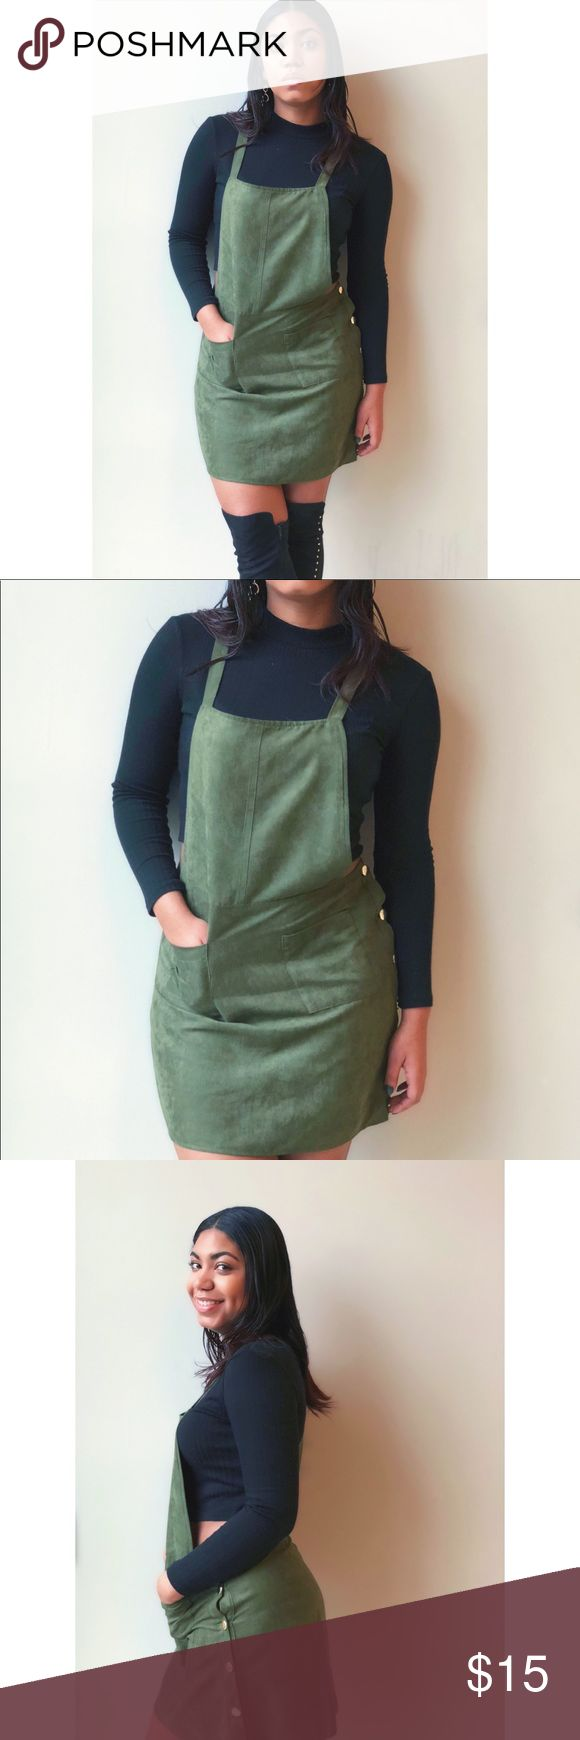 Green suede dungaree overalls It can be a dress or a skirt. The long straps allows you to wear anything underneath – from bandeaus, crop tops, t-shirts, dress tops to sweaters! Have fun with this piece! Never worn primark Dresses Midi